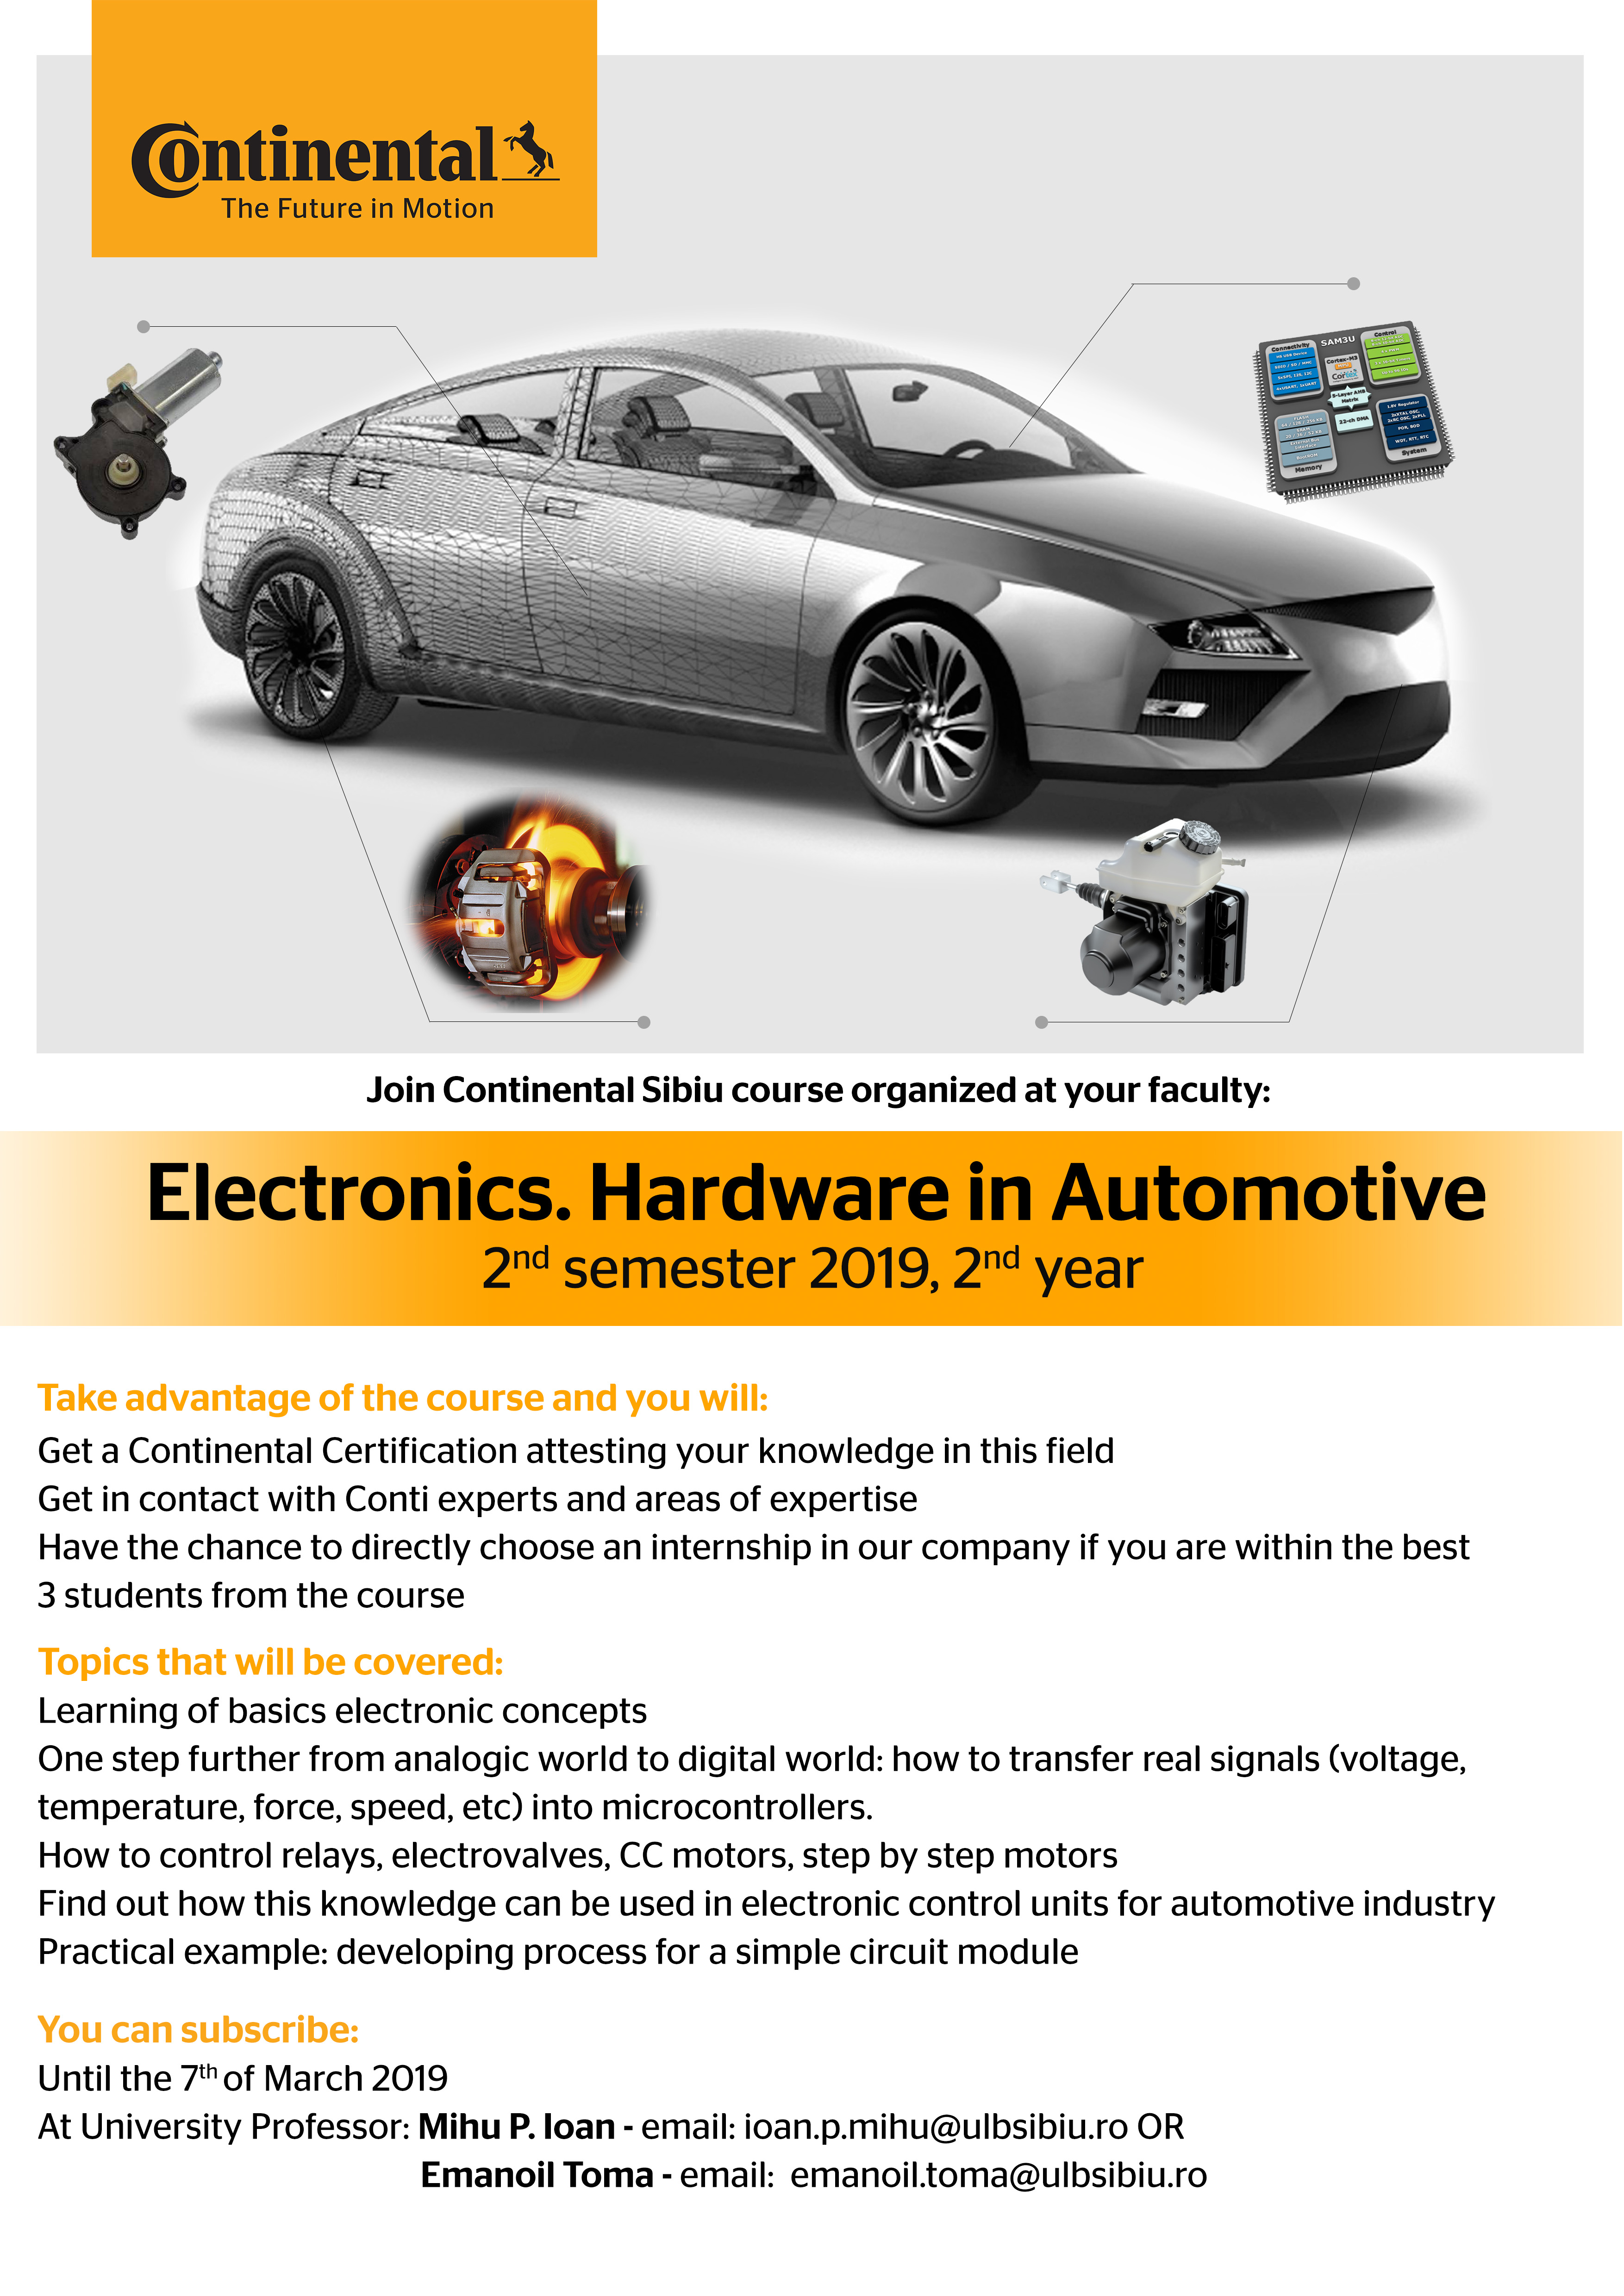 Curs Electronics.Hardware In Automotive – Continental Sibiu